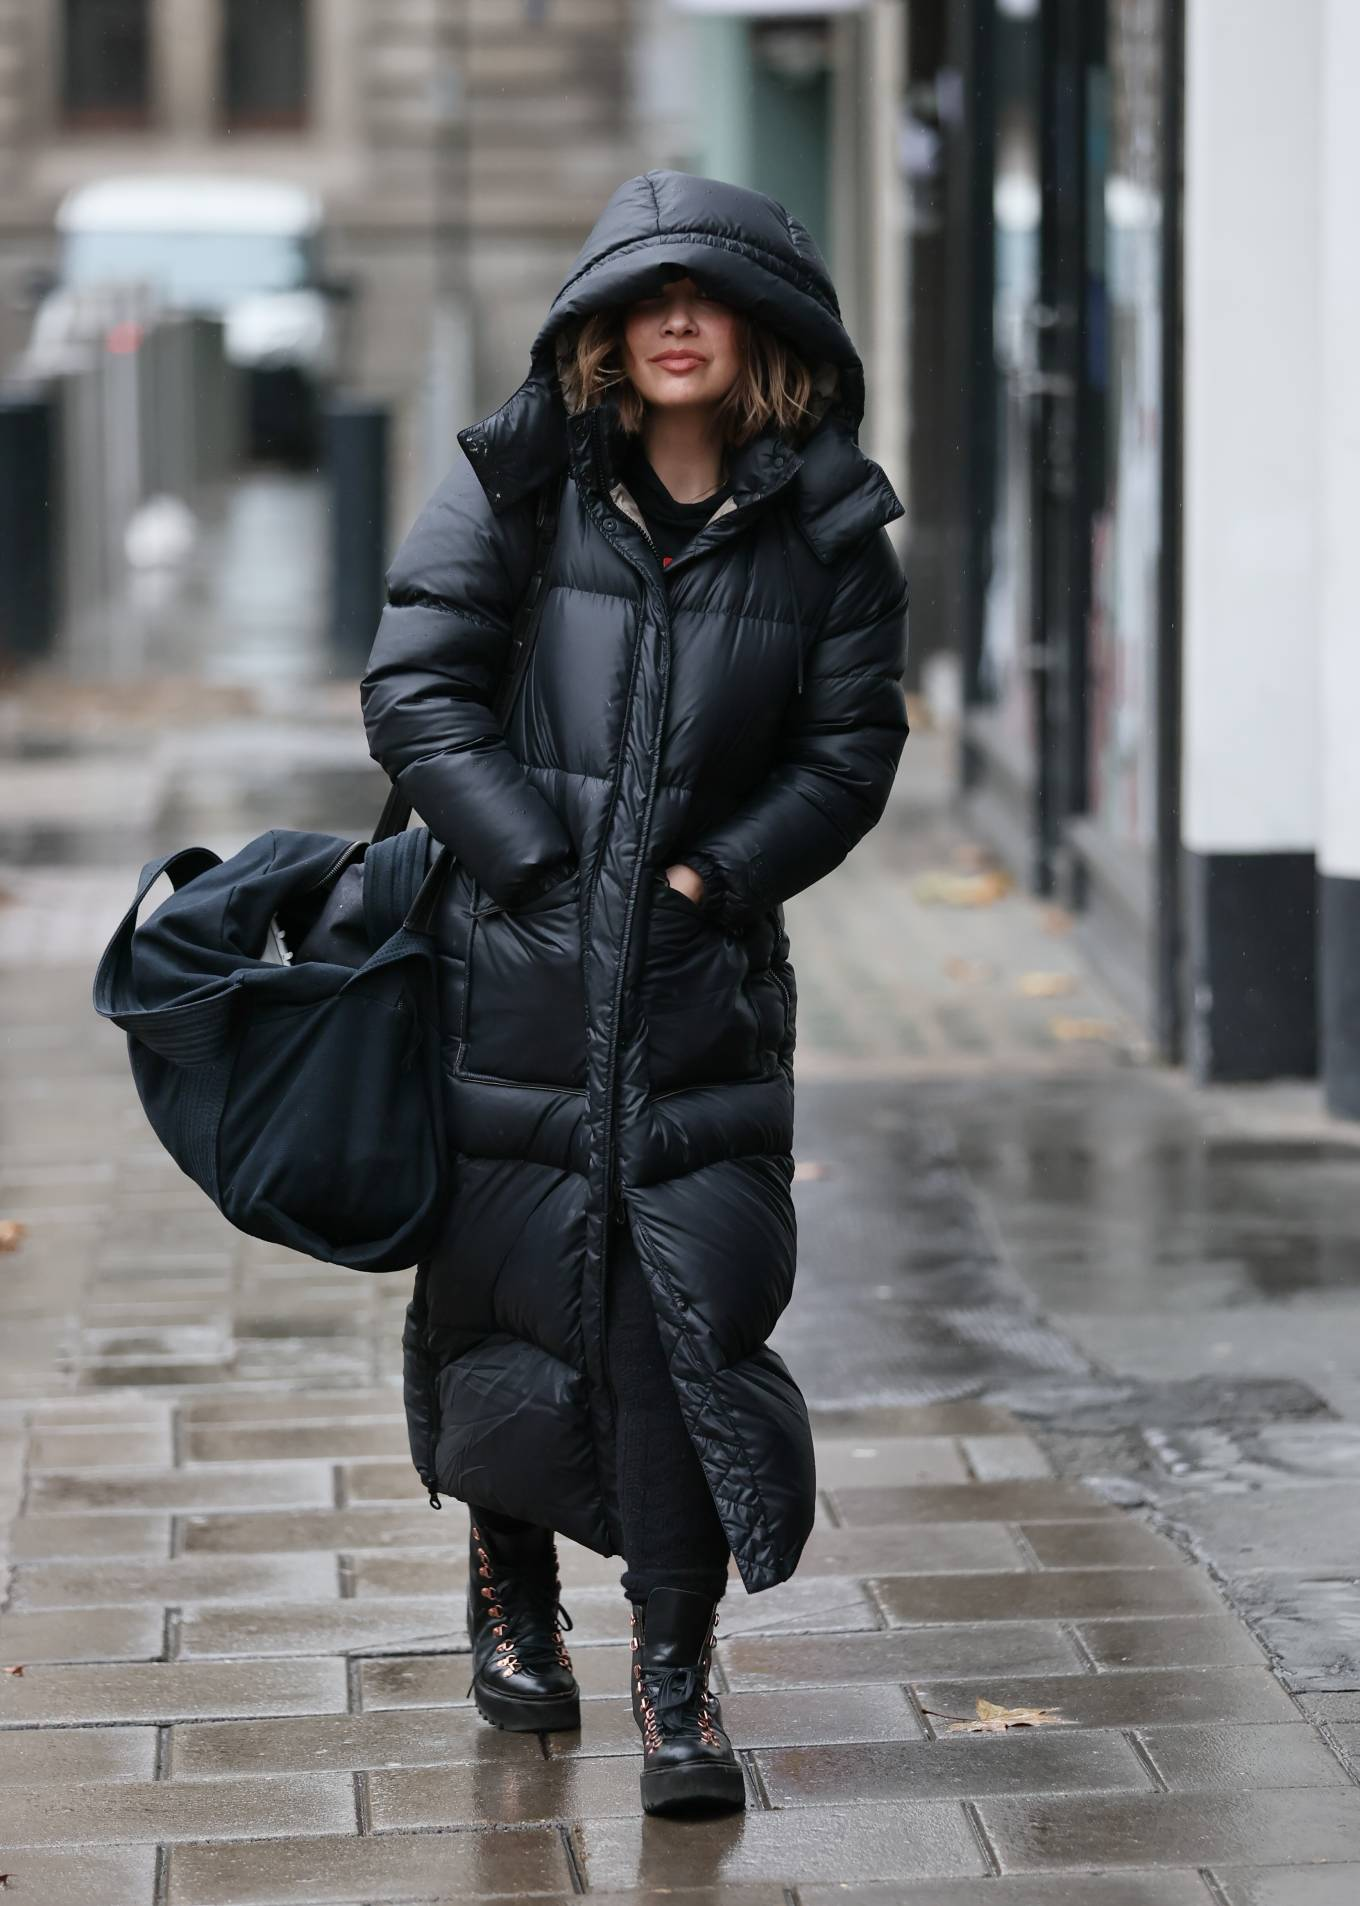 Myleene Klass - In a warm coat arriving at Smooth radio in London